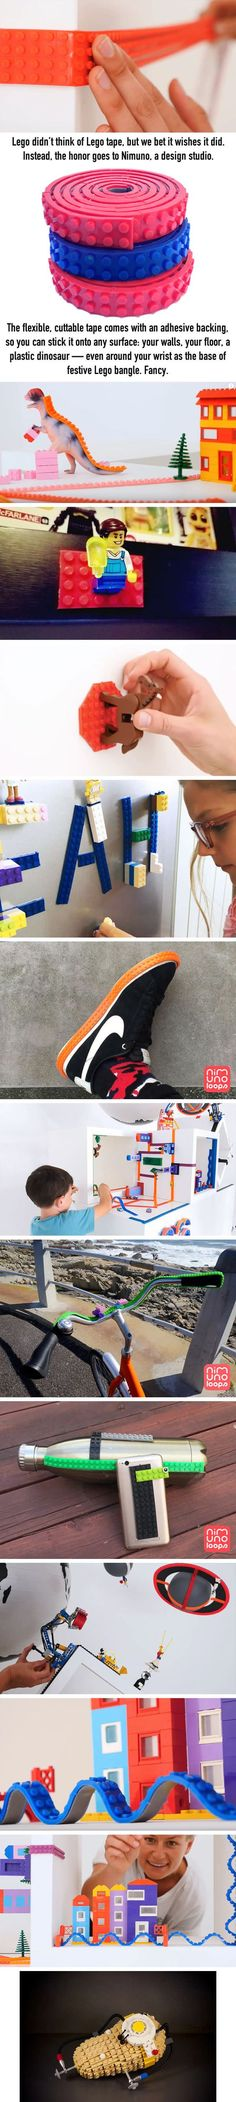 Magical Lego Tape Will Let You Stack Legos Anywhere - 9GAG